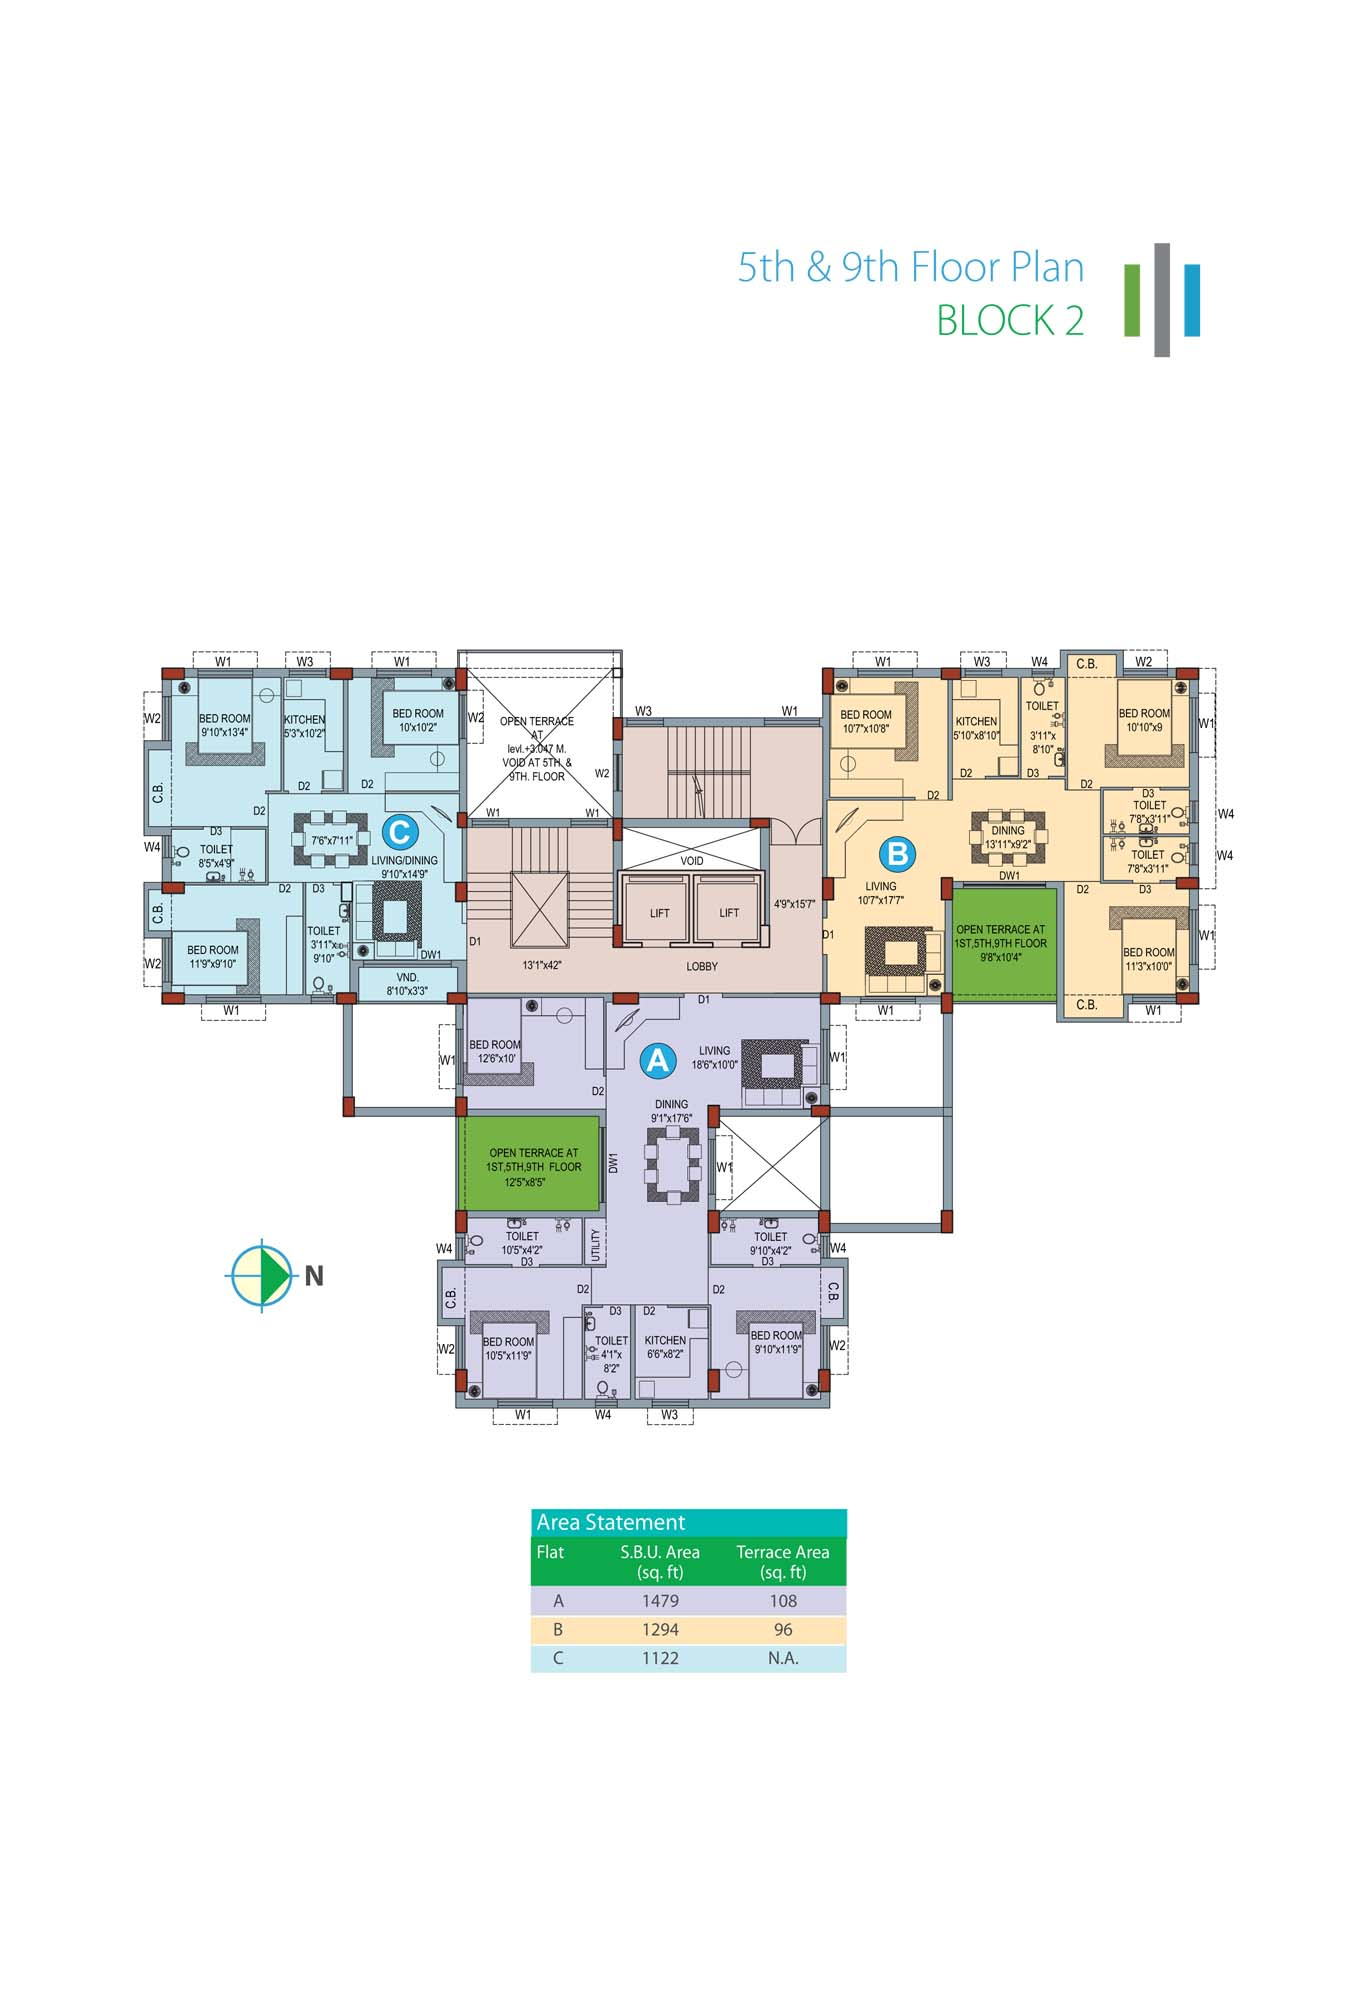 Eden Sky Terraces - Block 2 5th & 9th Floor Plan